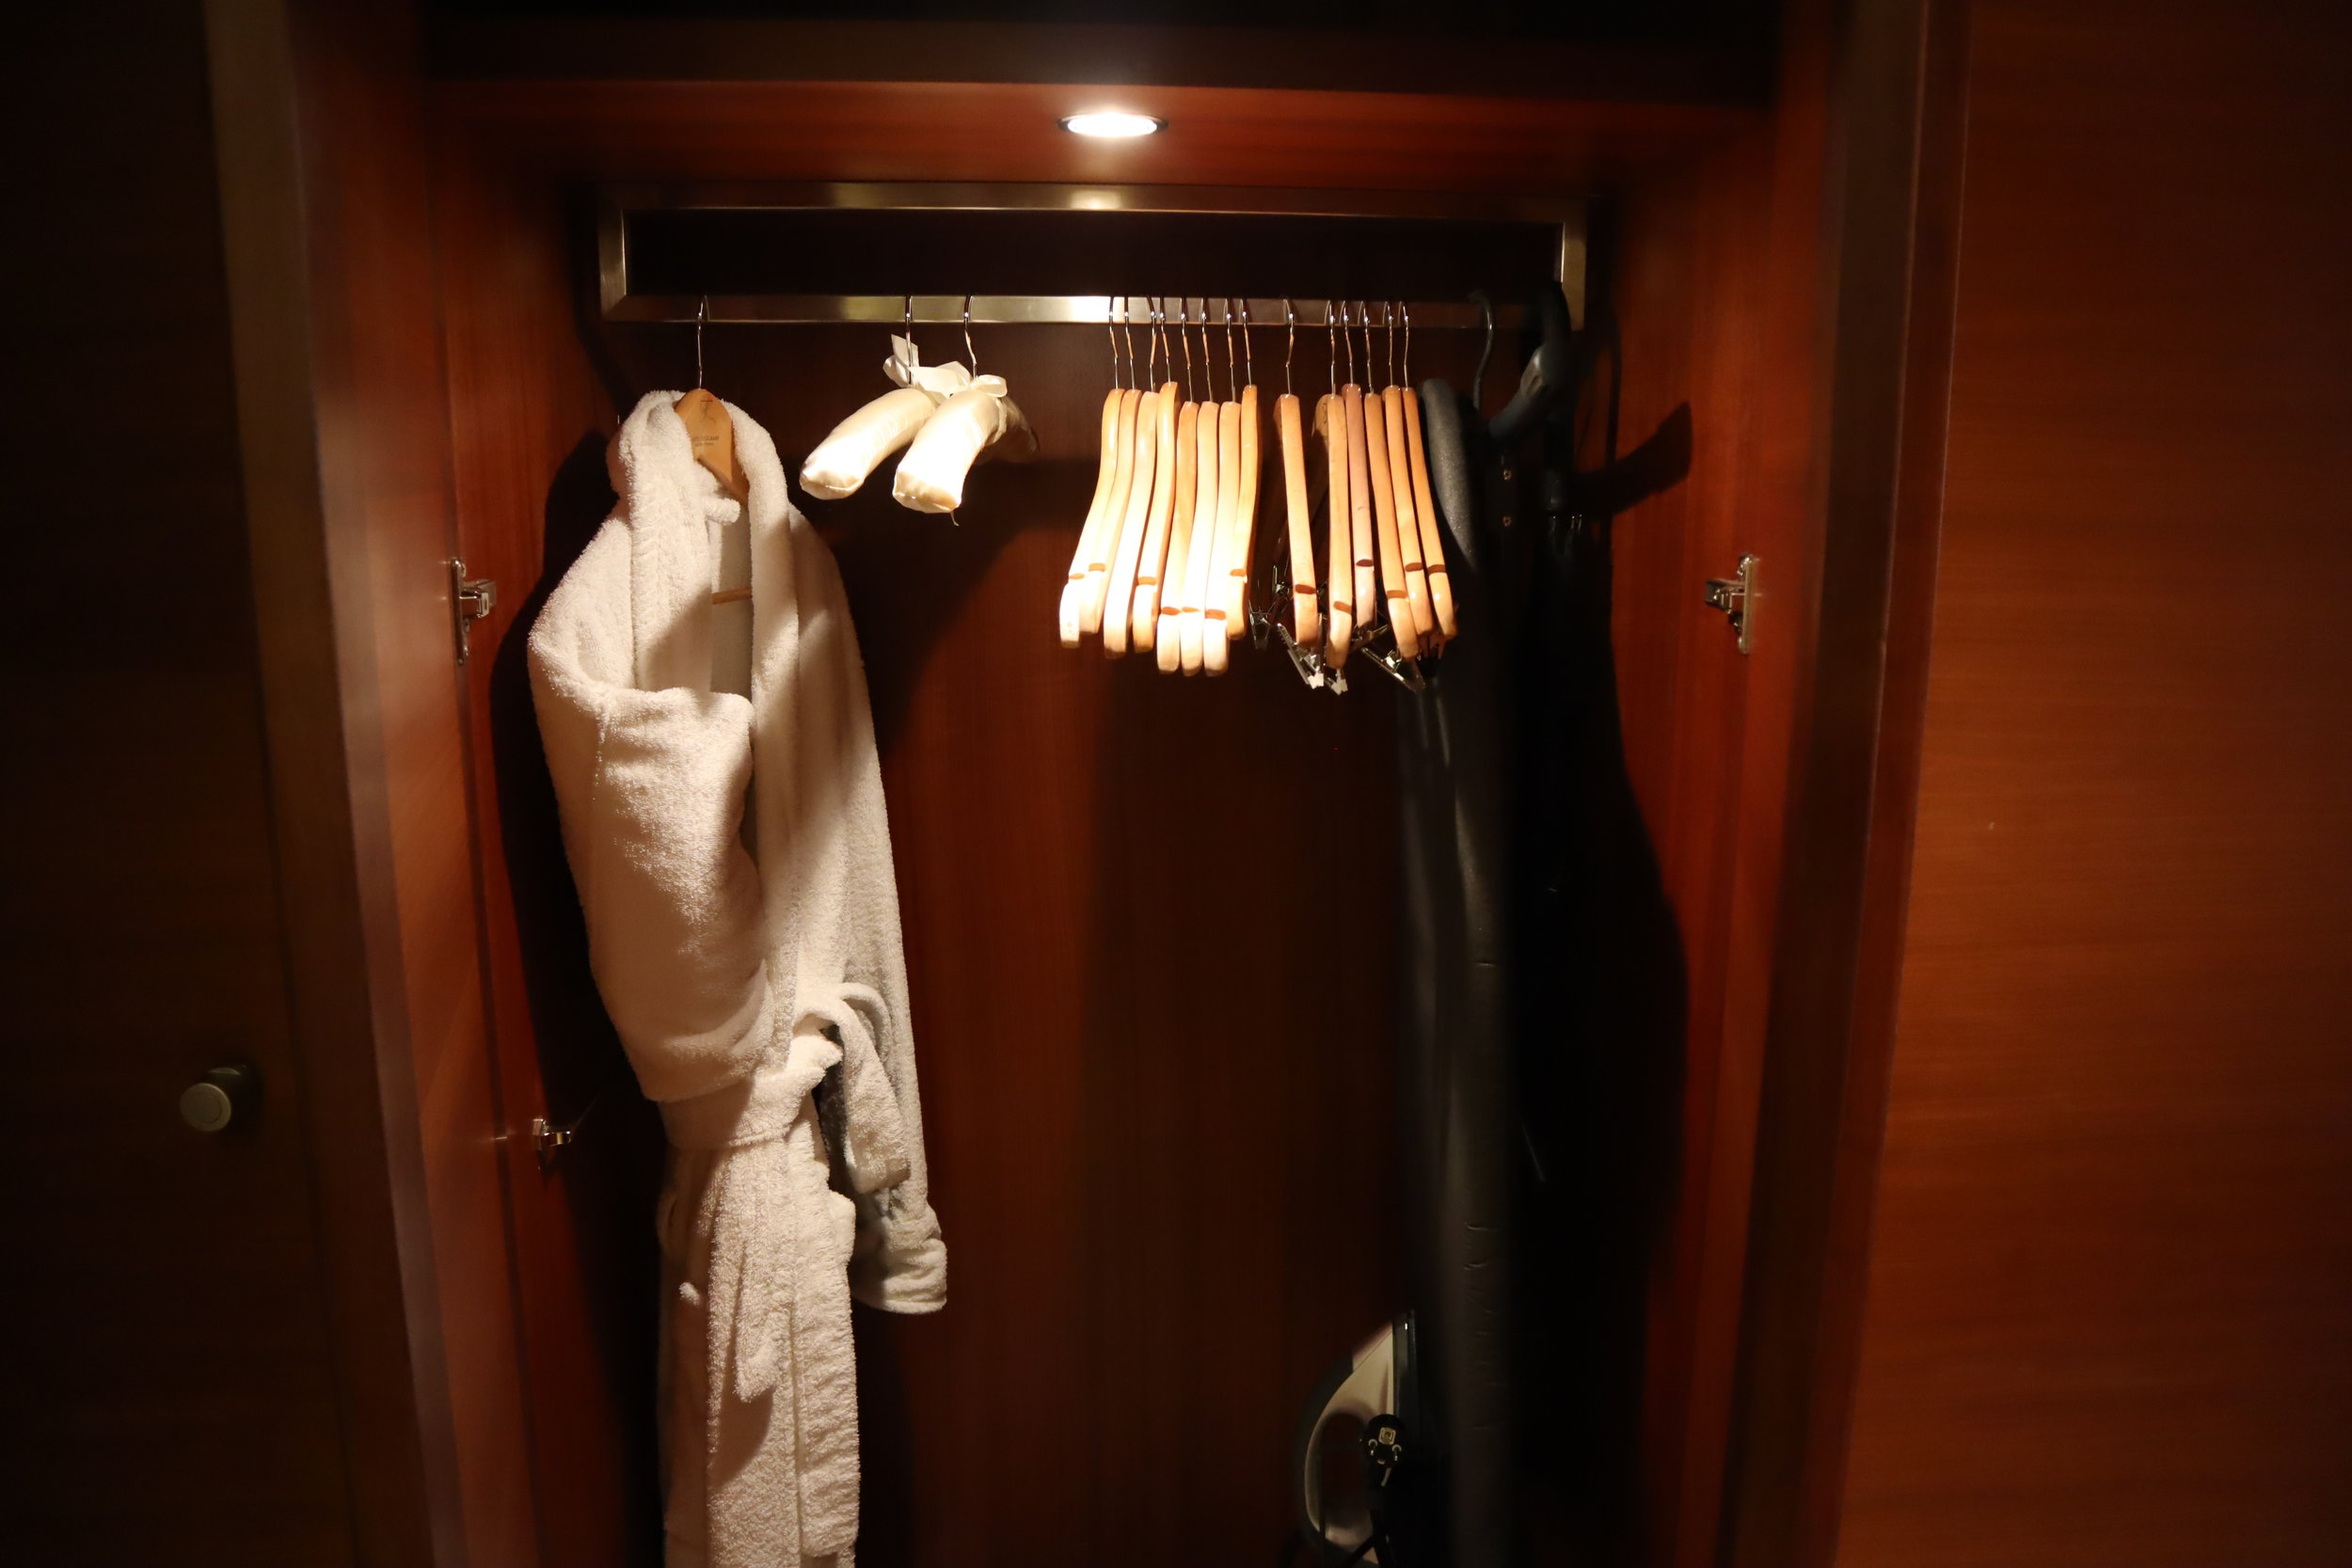 Hotel Telegraaf Tallinn – Bathrobe